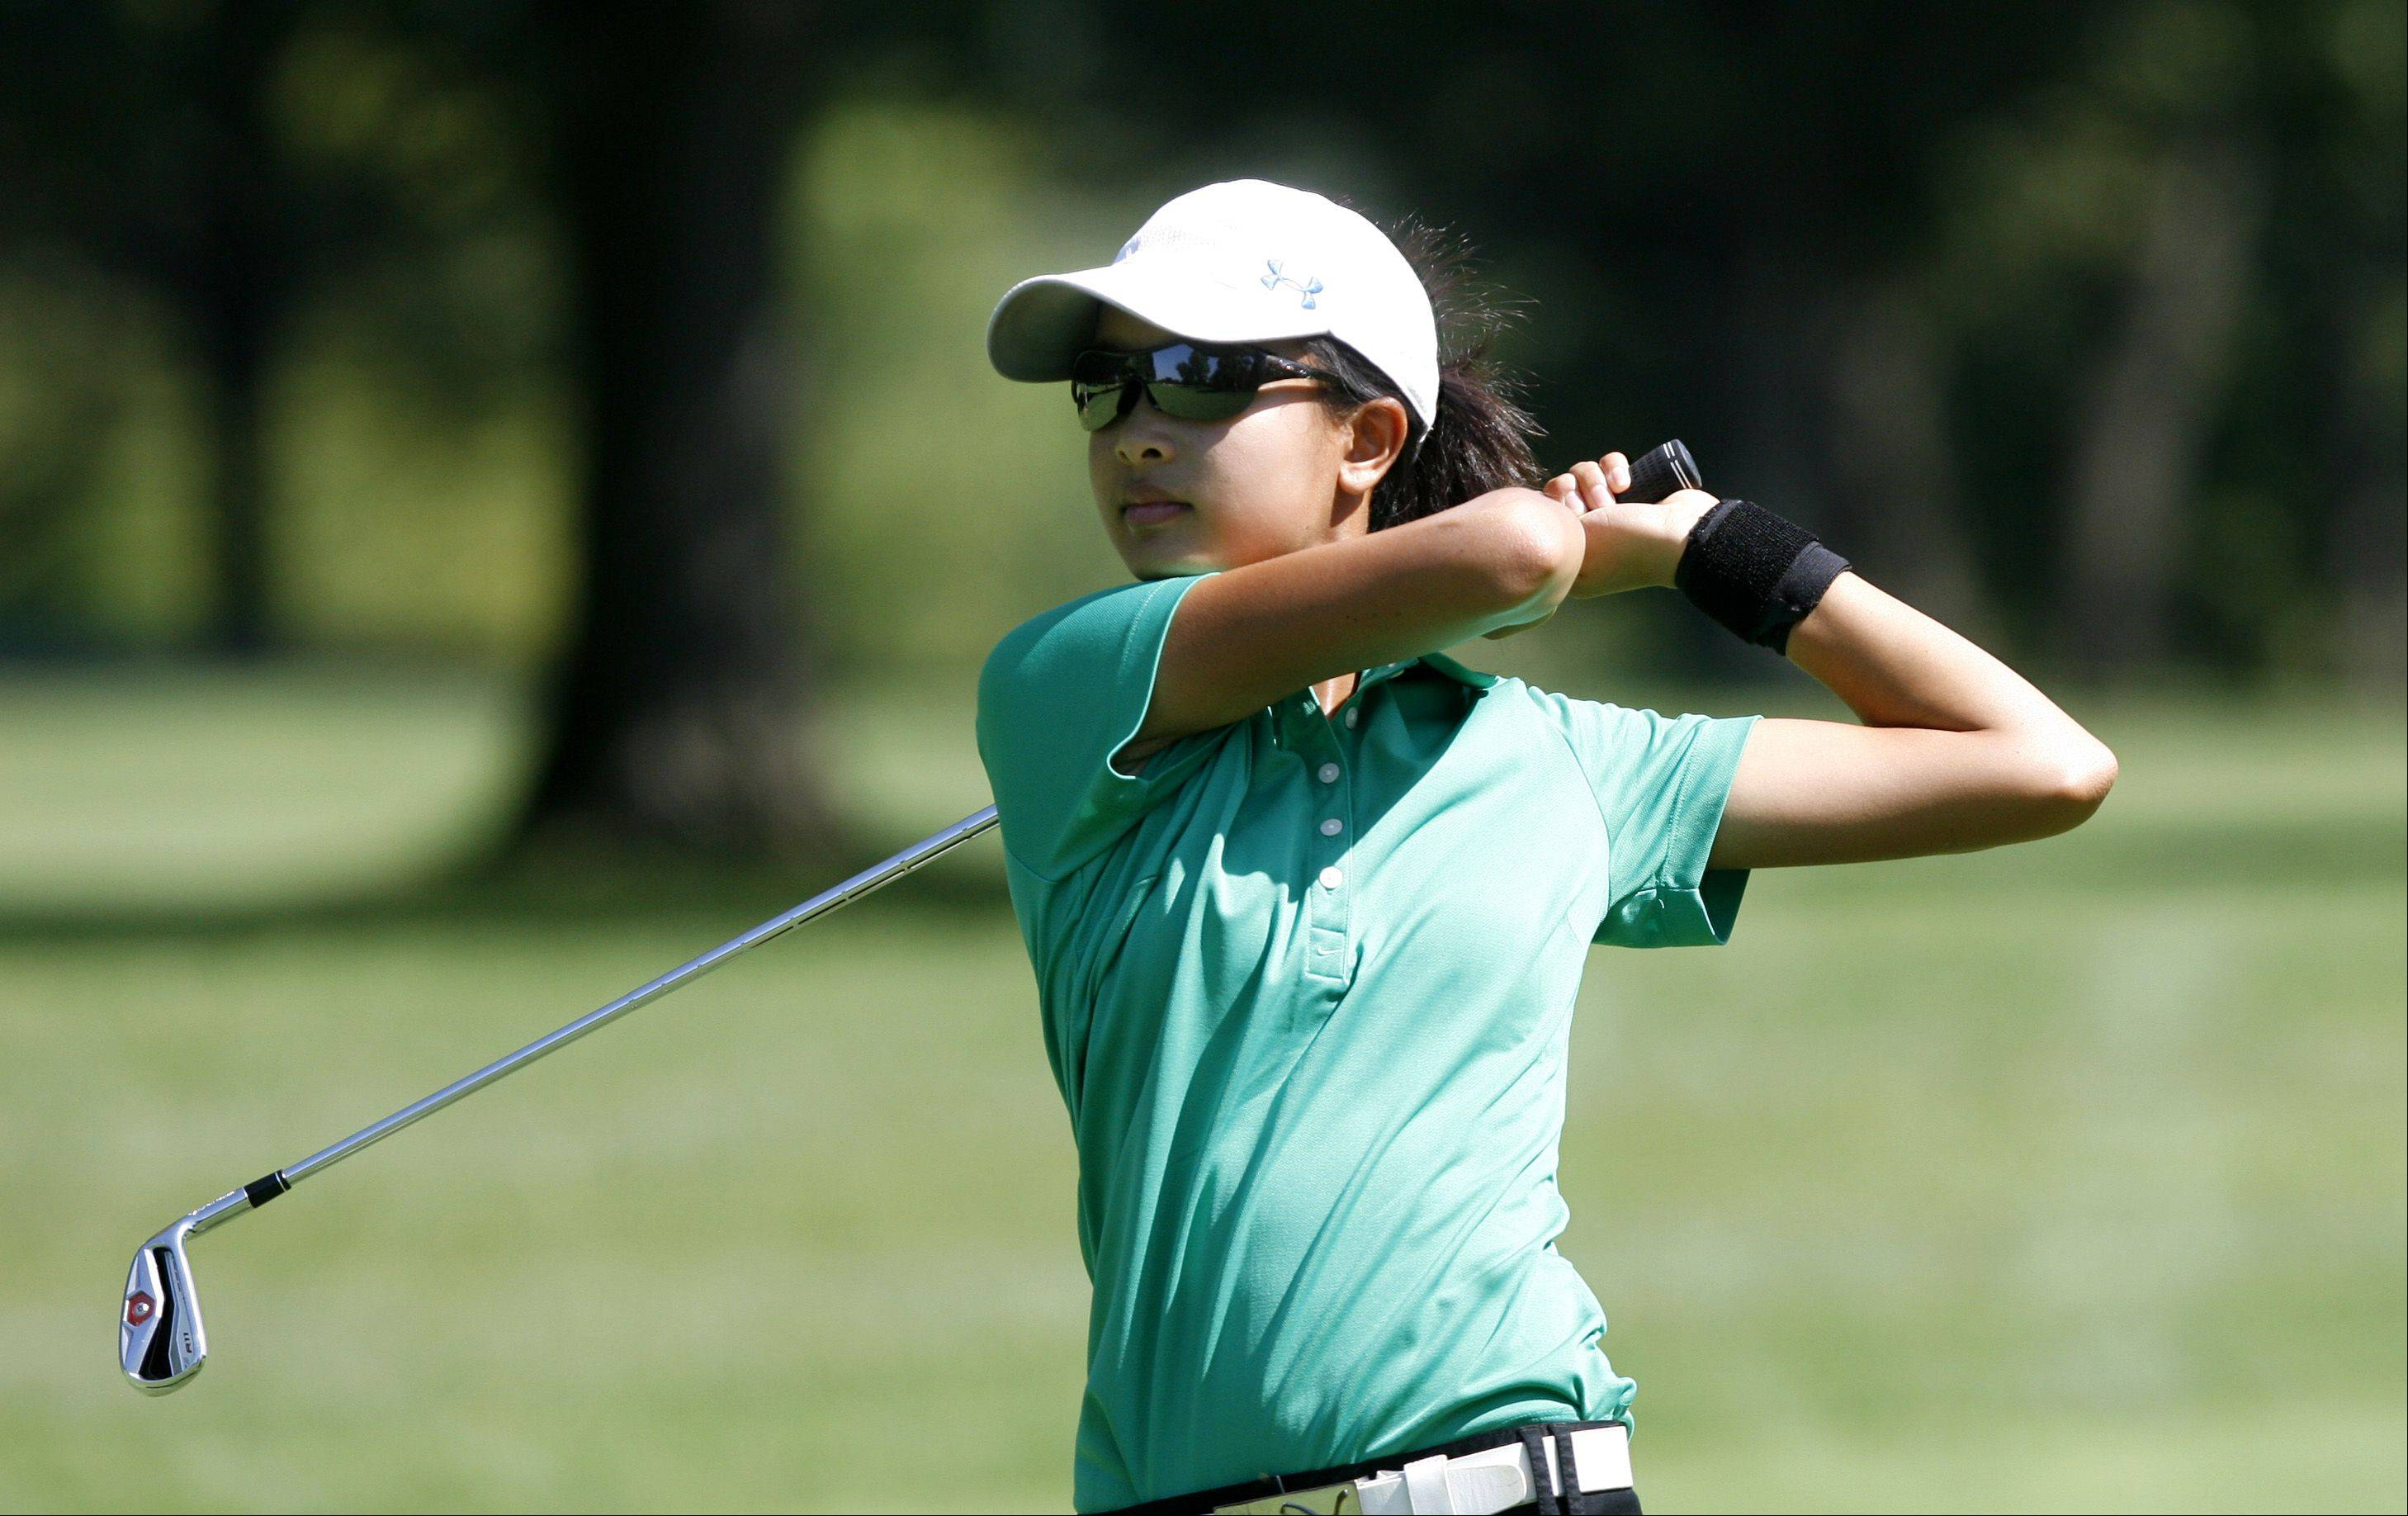 Waubonsie Valley's Bing Singhsumalee approaches the green, during the Vern McGonagle Memorial High School Golf Championship, held at the Naperville Country Club.